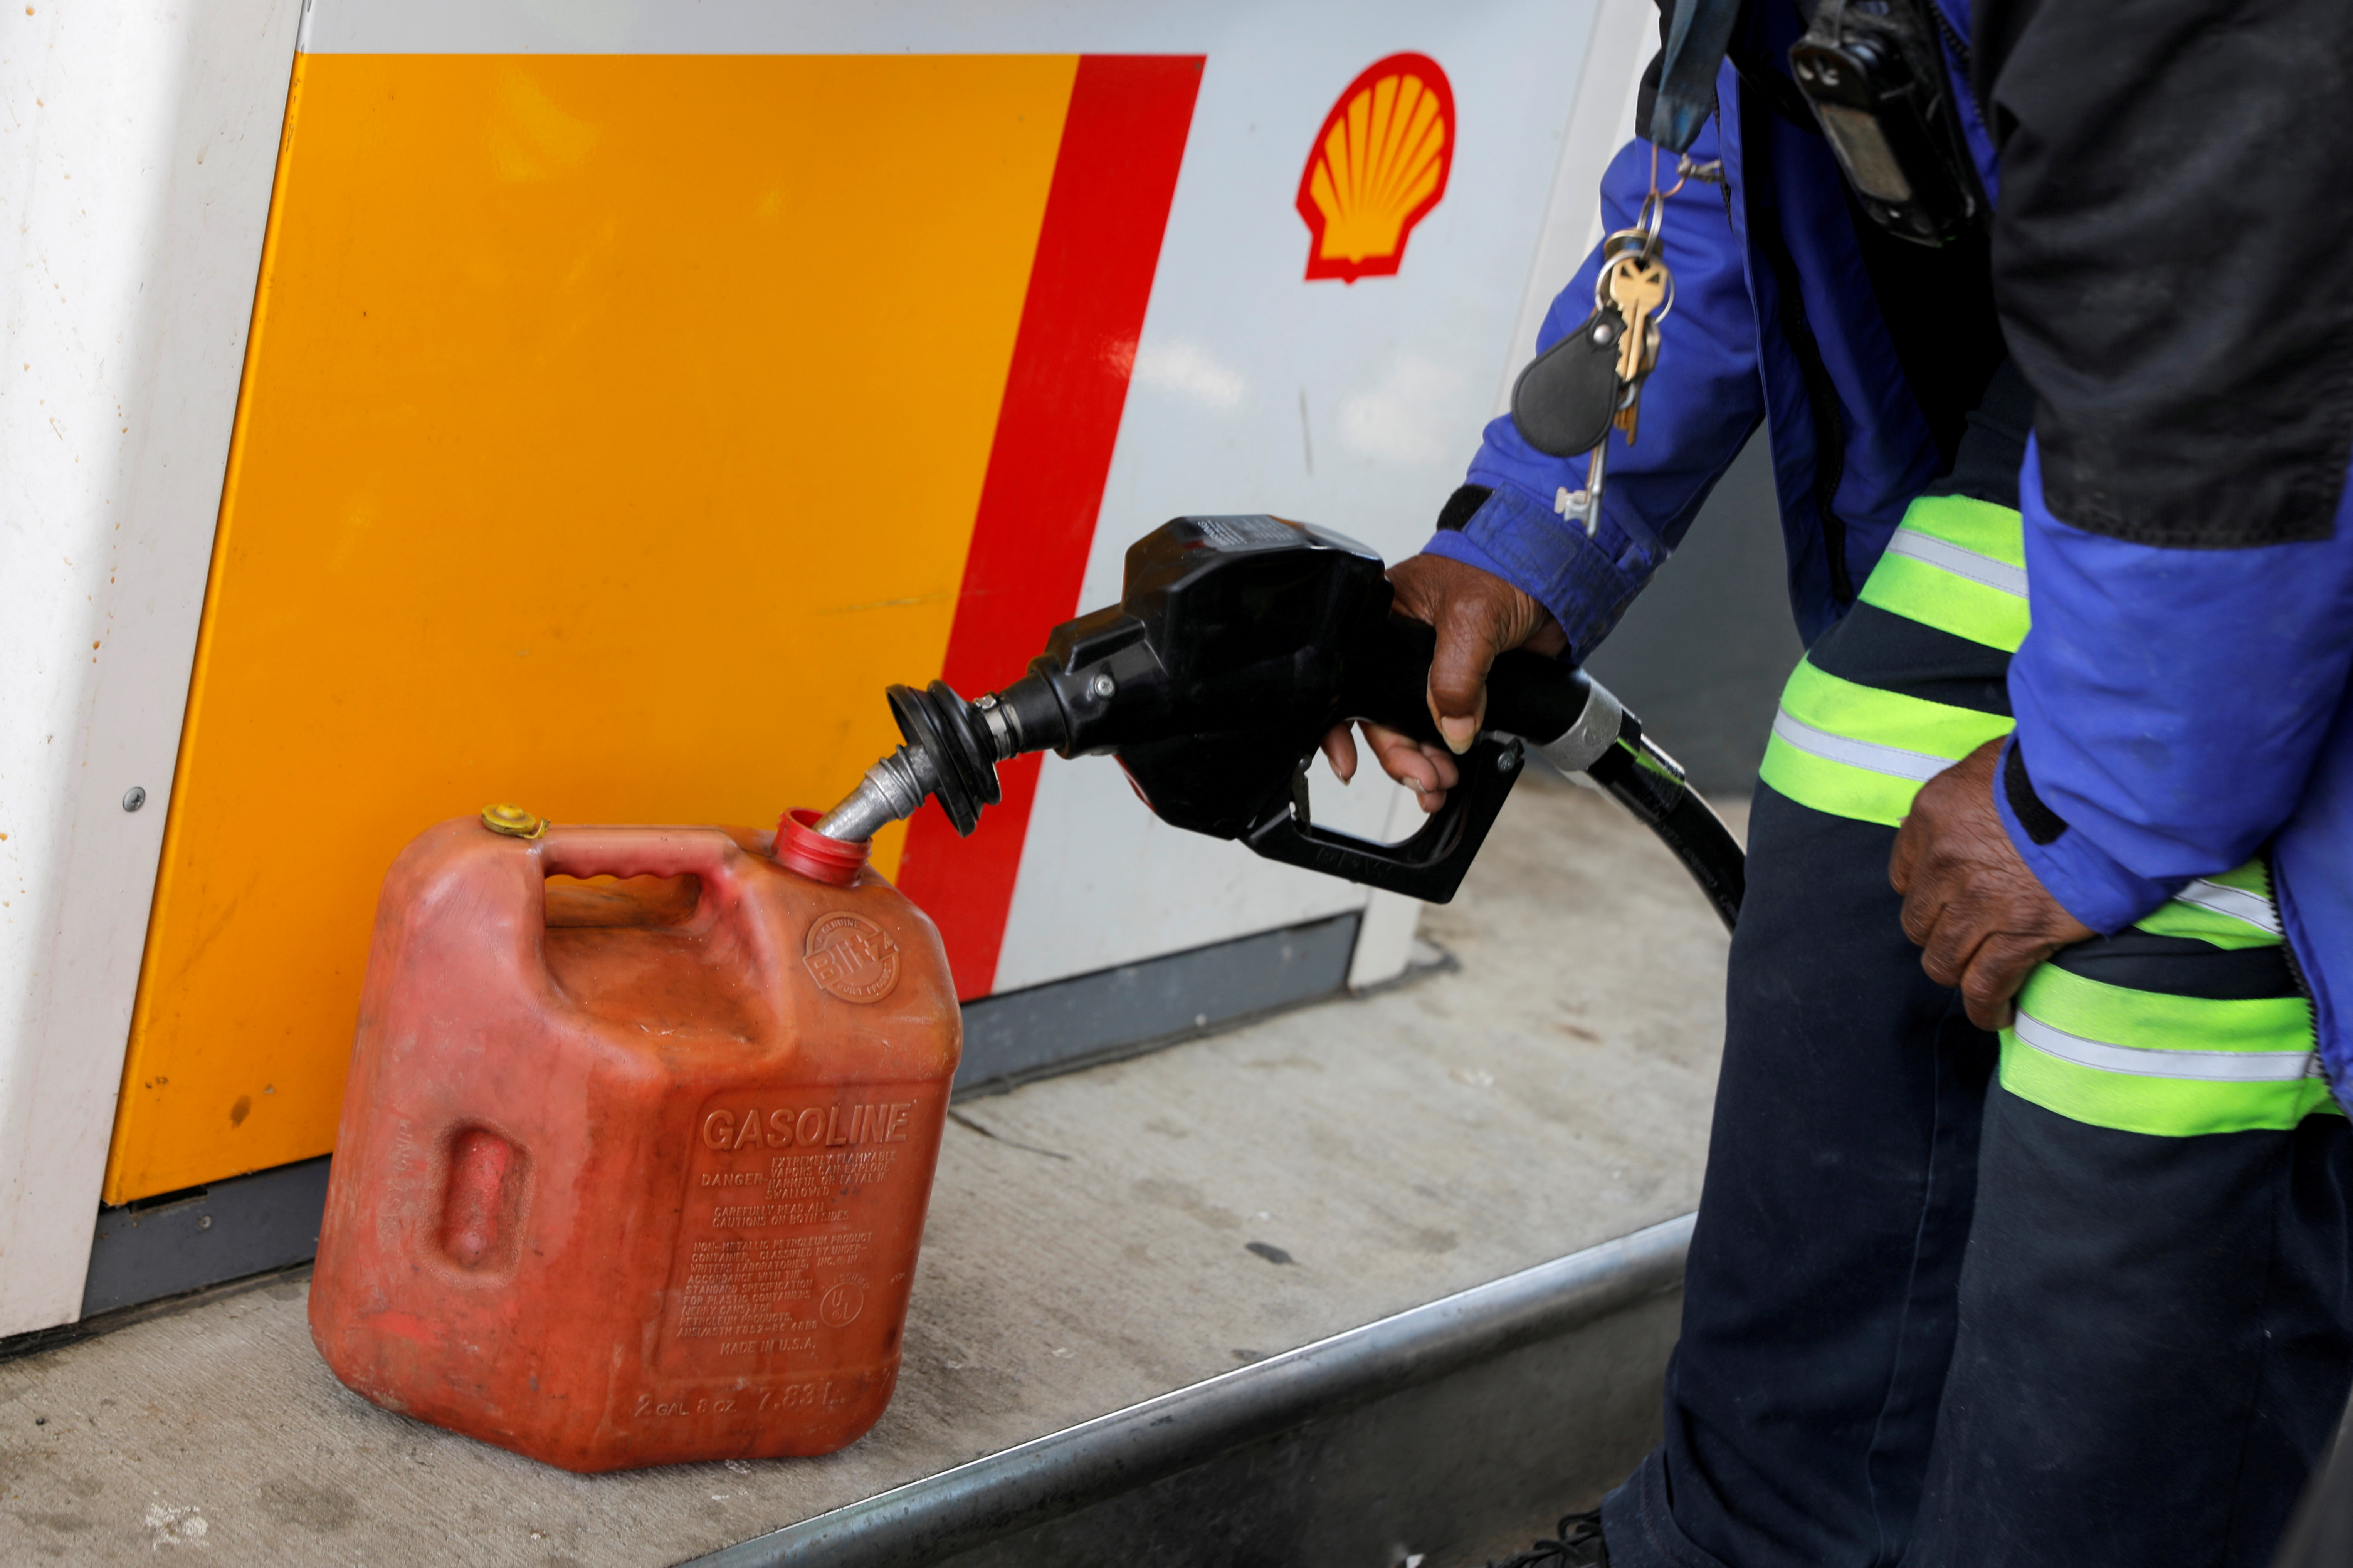 A person fills a fuel container at a Shell gas station, after a cyberattack crippled the biggest fuel pipeline in the country, run by Colonial Pipeline, in Washington, D.C., U.S., May 15, 2021. REUTERS/Andrew Kelly